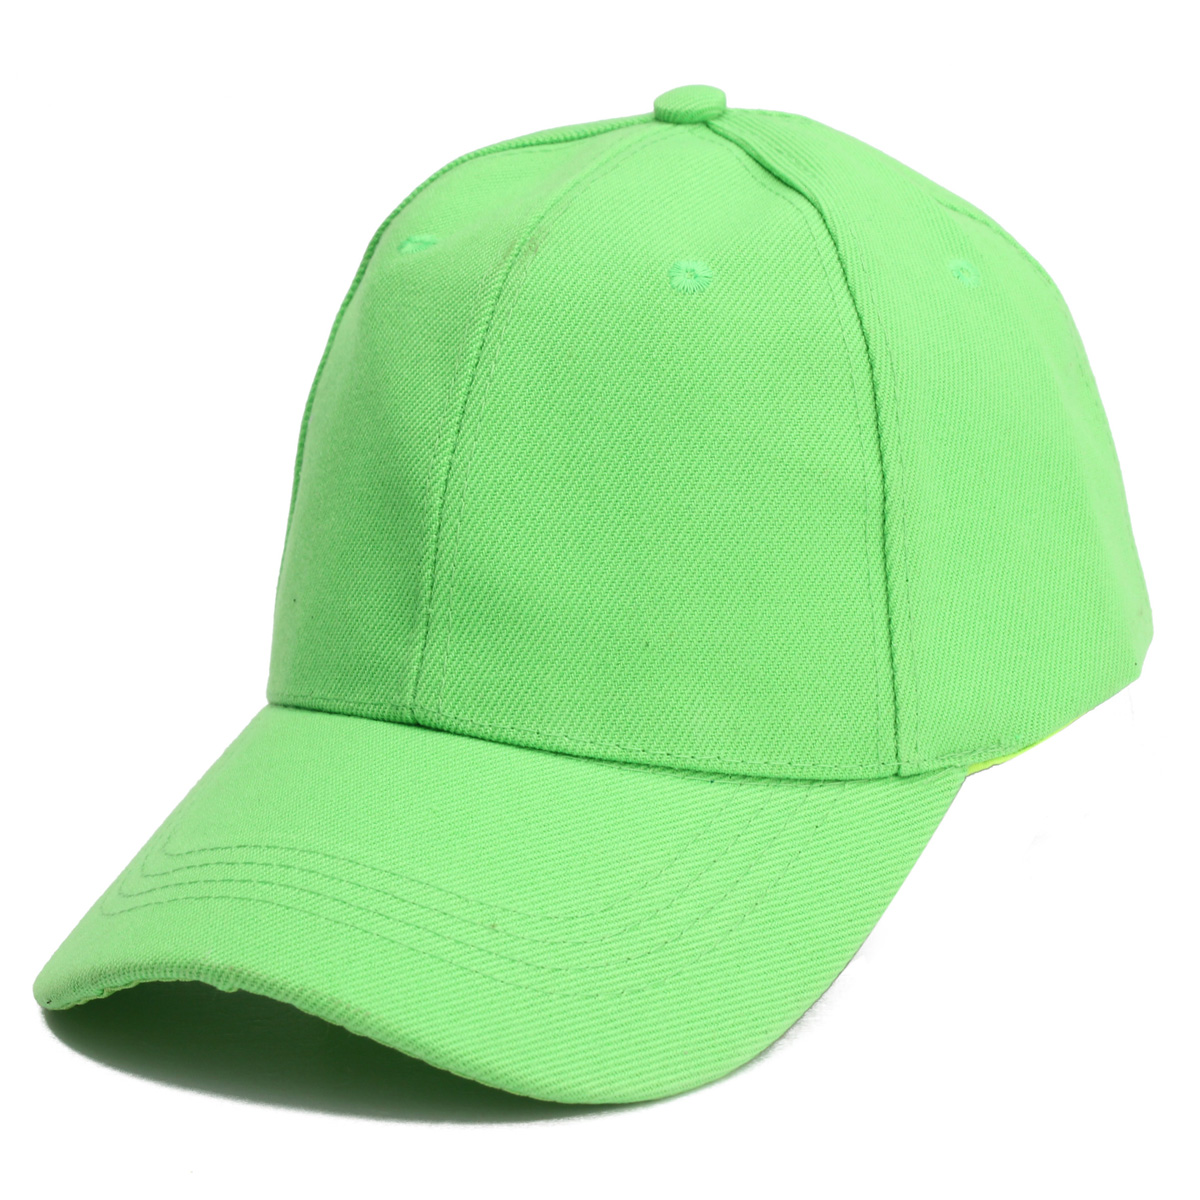 Unisex Classic Solid Pure Color Canvas Golf Sunshade Baseball Cap Velcro Adjustable Hat